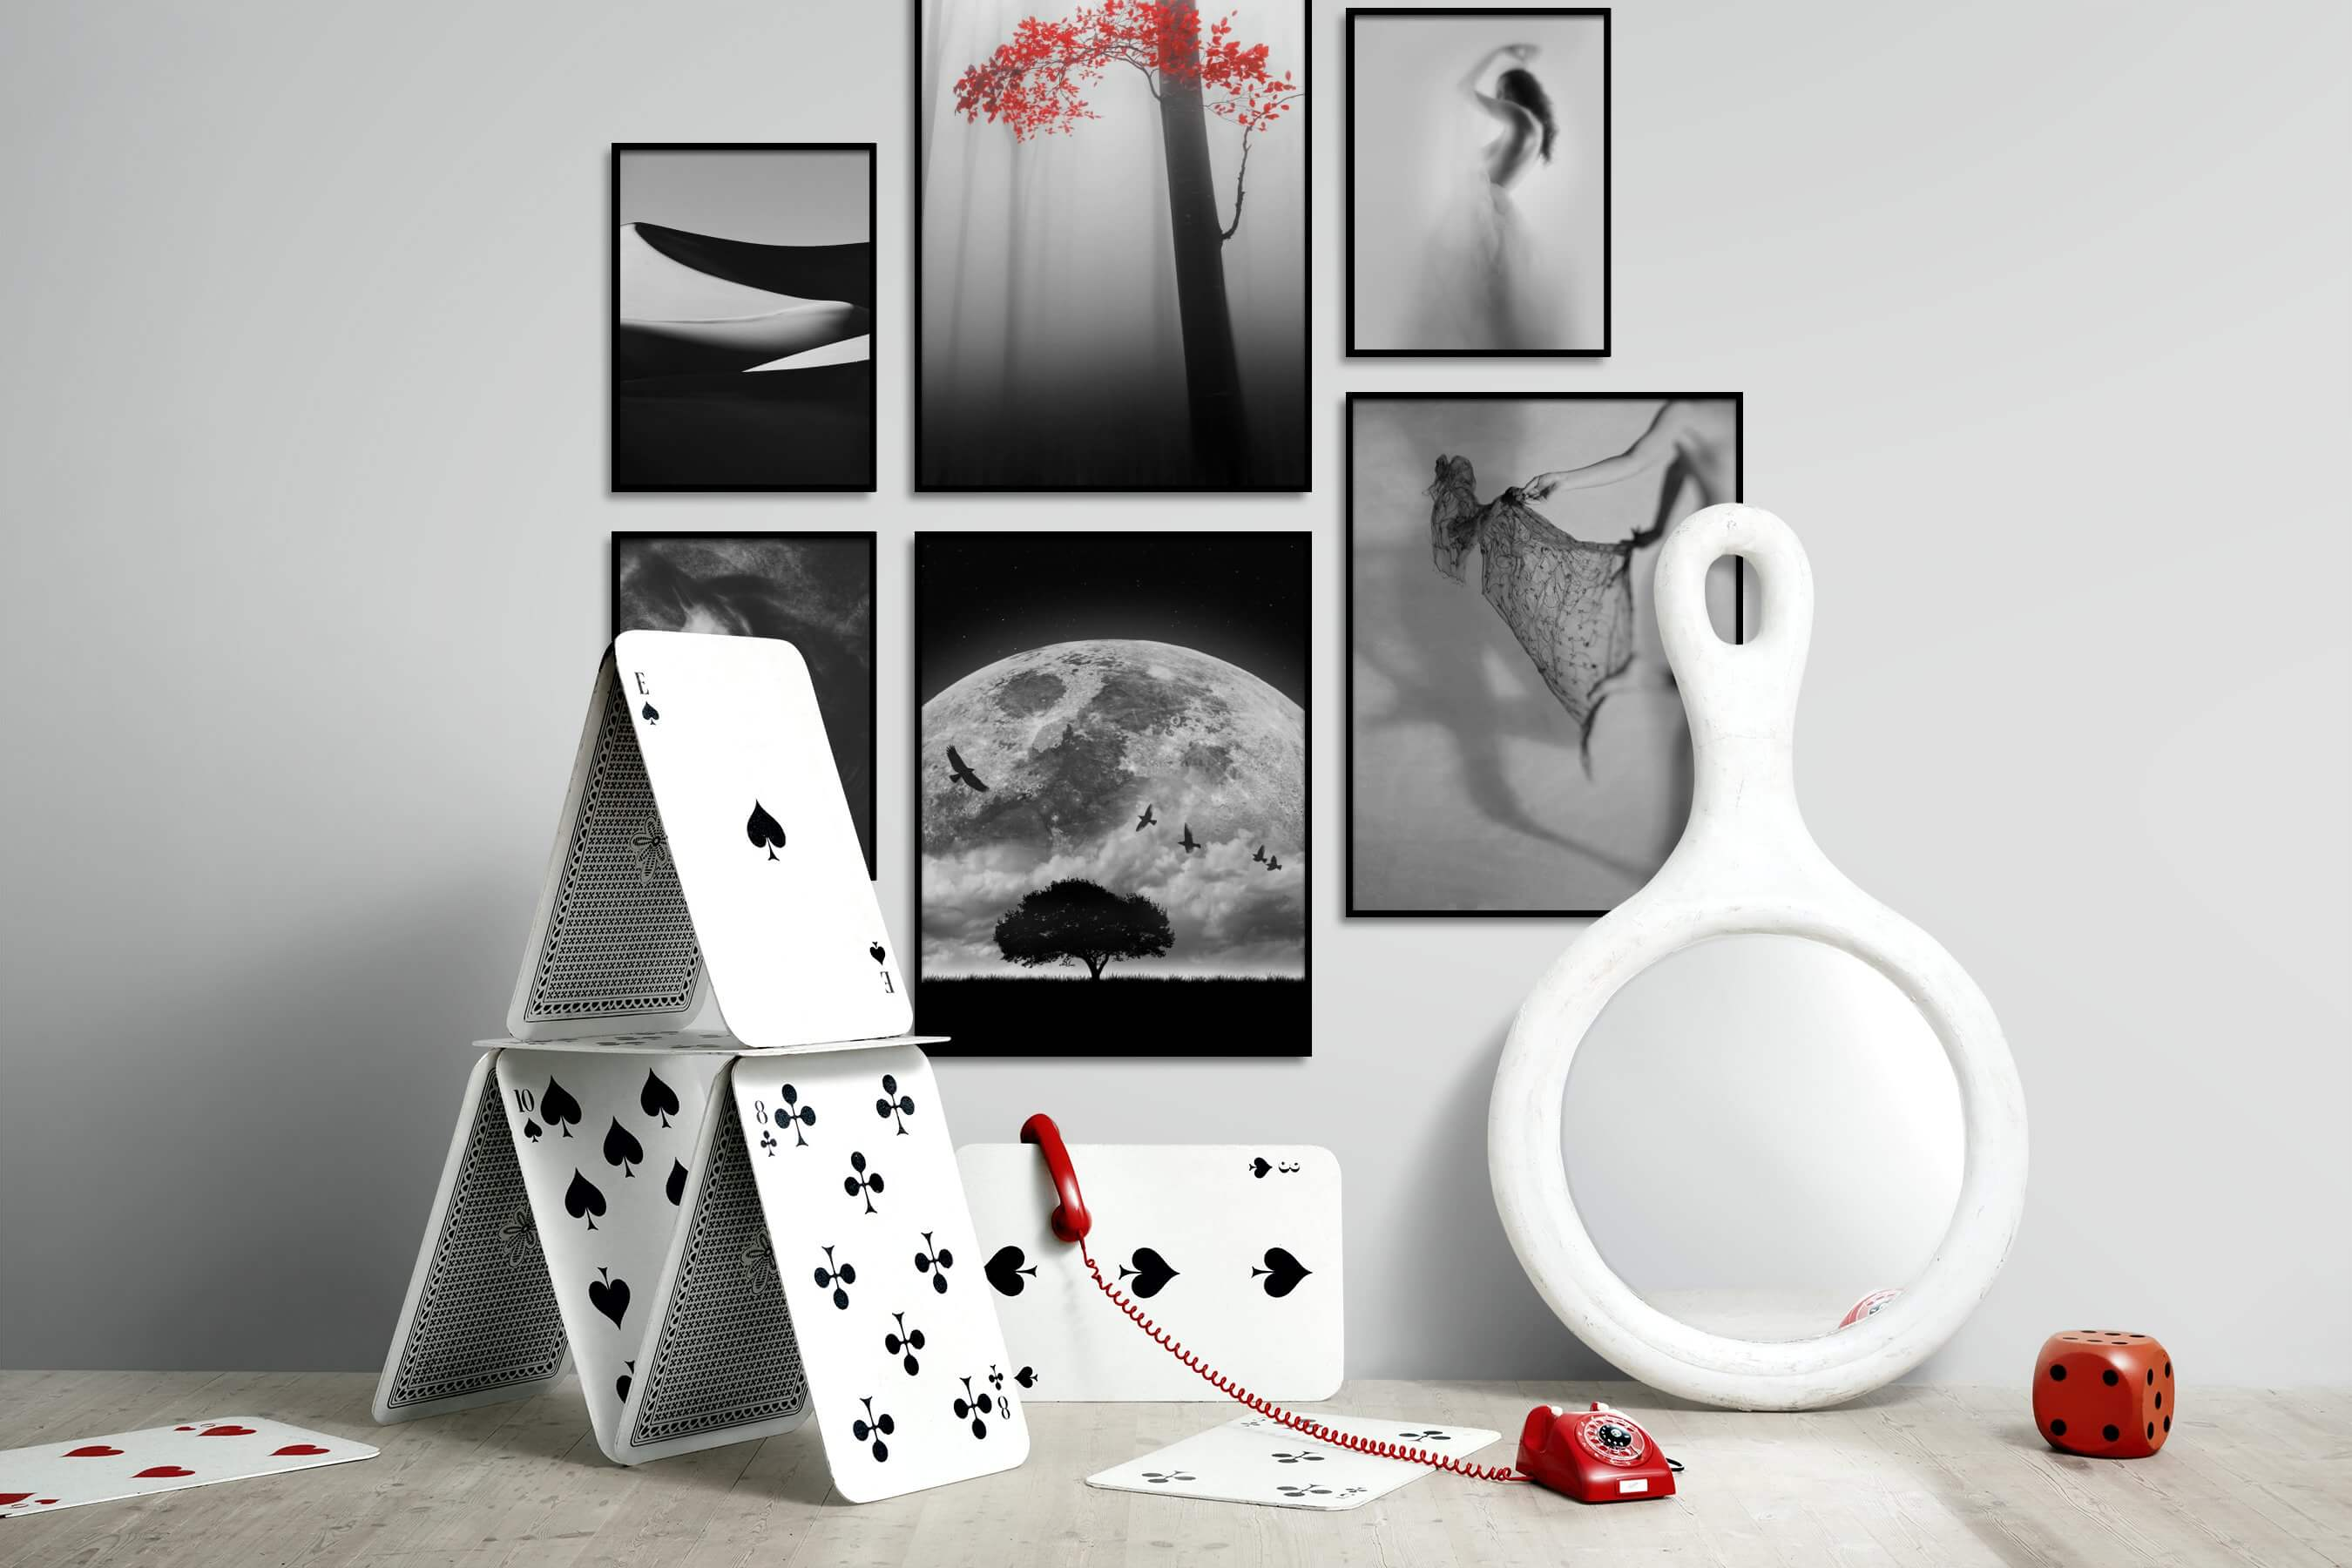 Gallery wall idea with six framed pictures arranged on a wall depicting Black & White, For the Minimalist, Nature, For the Moderate, Artsy, and Fashion & Beauty